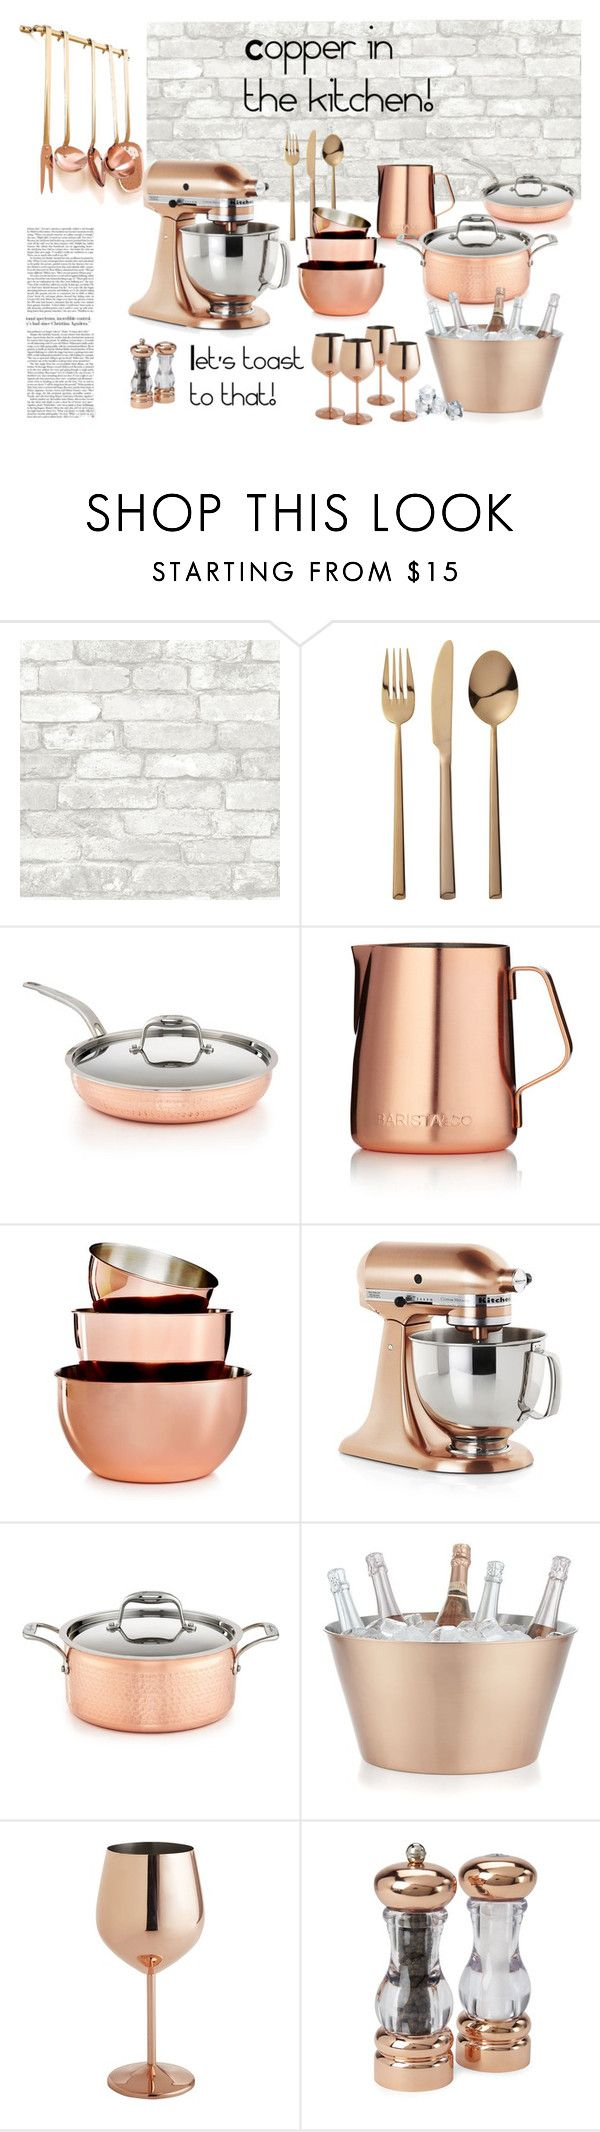 """Copper in the kitchen!"" by suelysara ❤ liked on Polyvore featuring interior, interiors, interior design, home, home decor, interior decorating, CB2, Lagostina, Barista & Co and Martha Stewart"